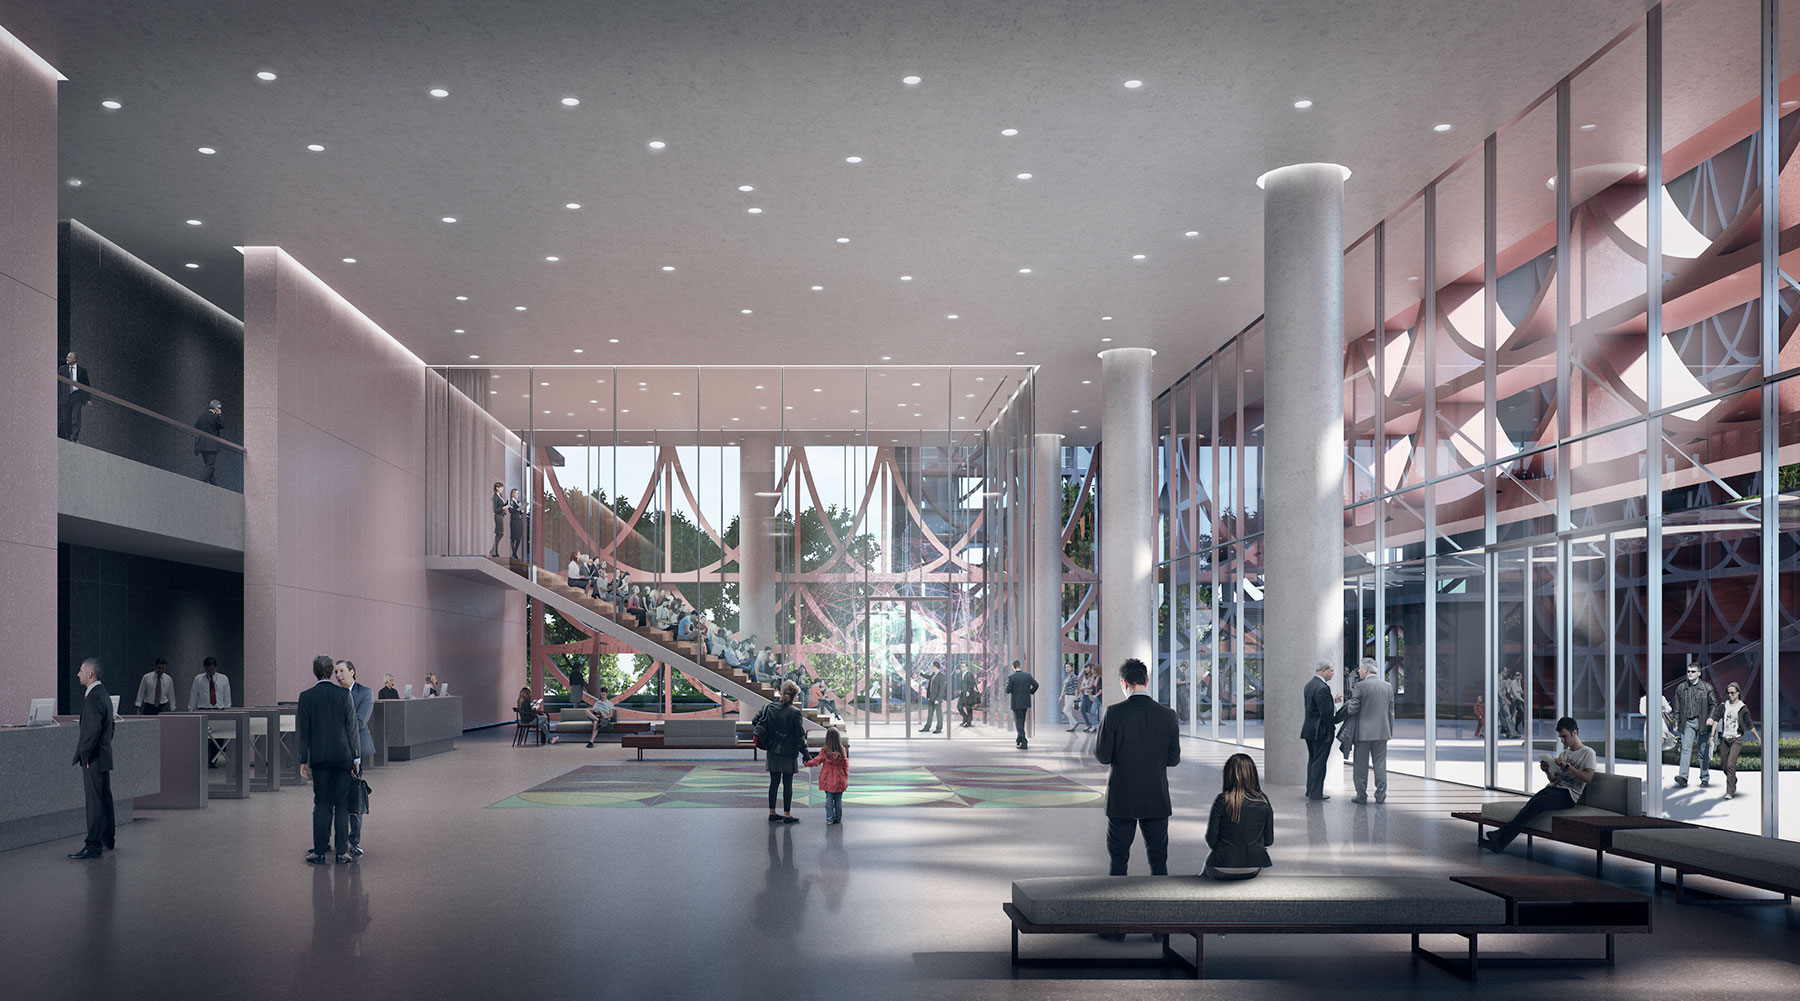 3D Interior lobby architecture rendering images by Serie Architects